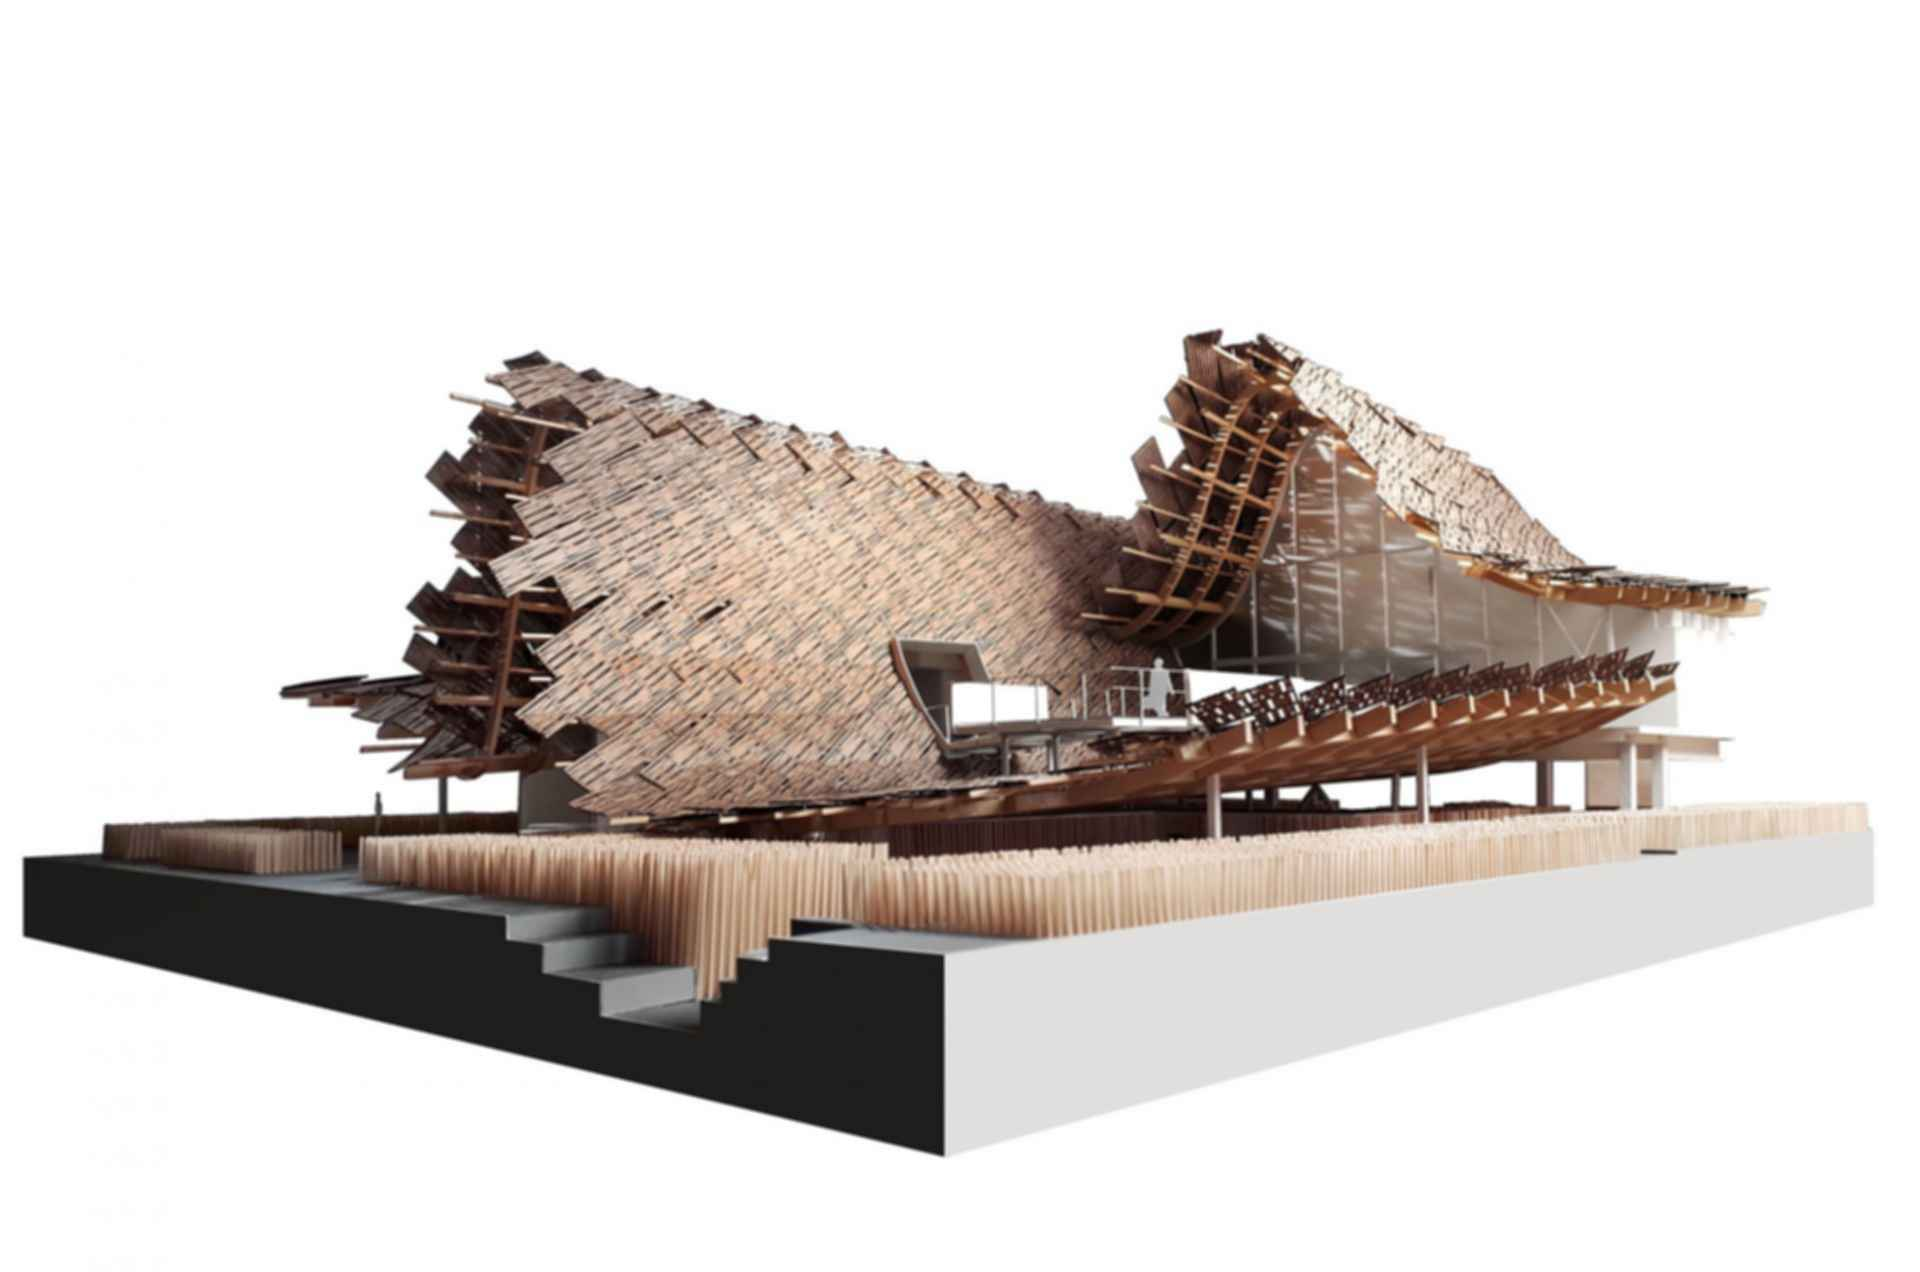 China Pavilion at Milan Expo 2015 - Concept Design